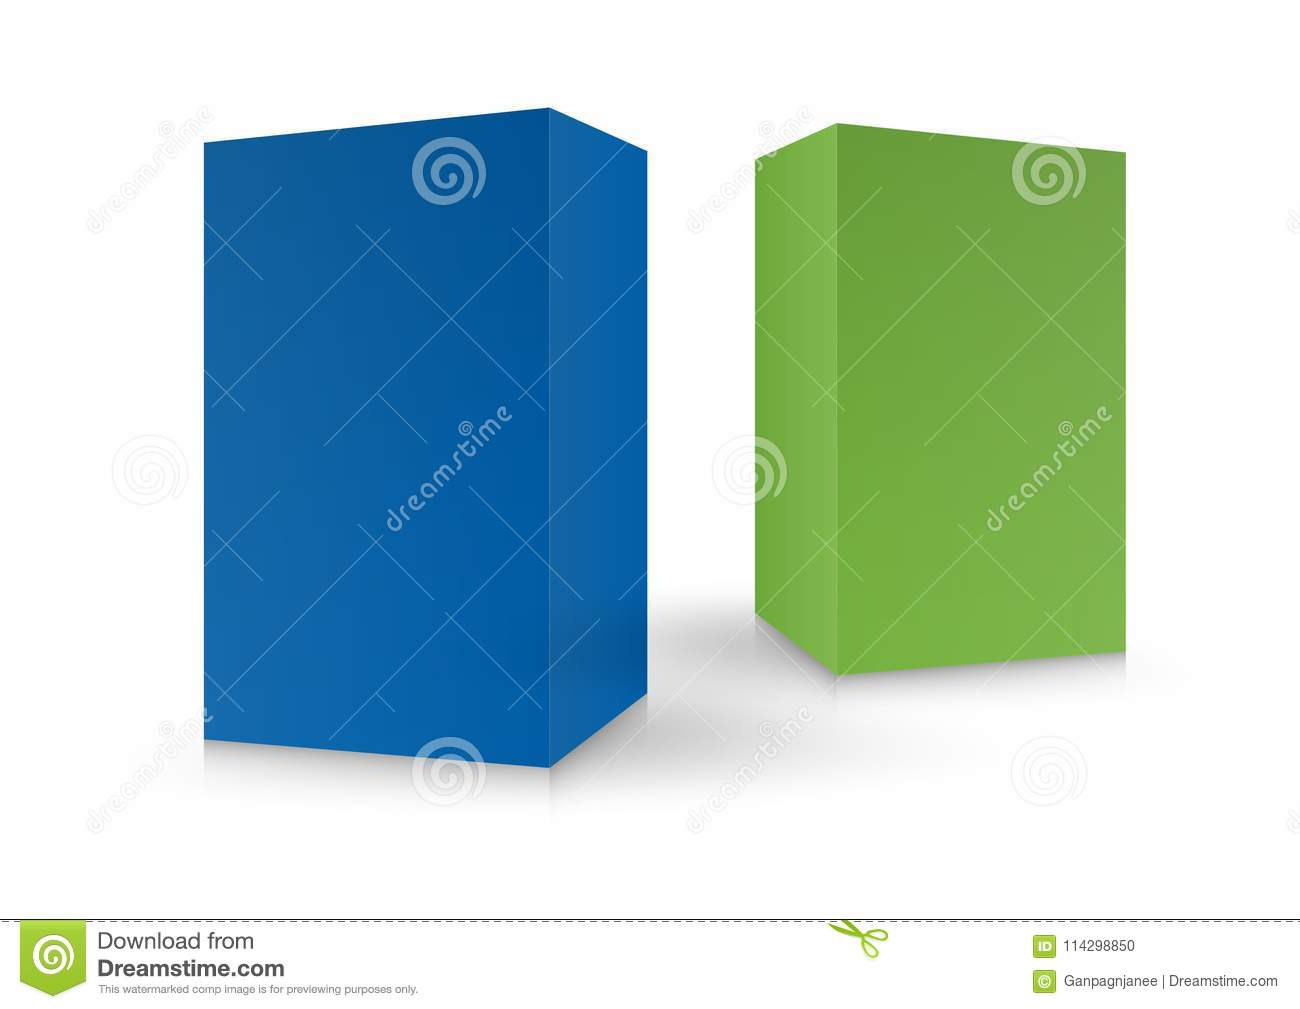 Colorful boxes package 3d box product designvector illustration download colorful boxes package 3d box product designvector illustration packaging maxwellsz